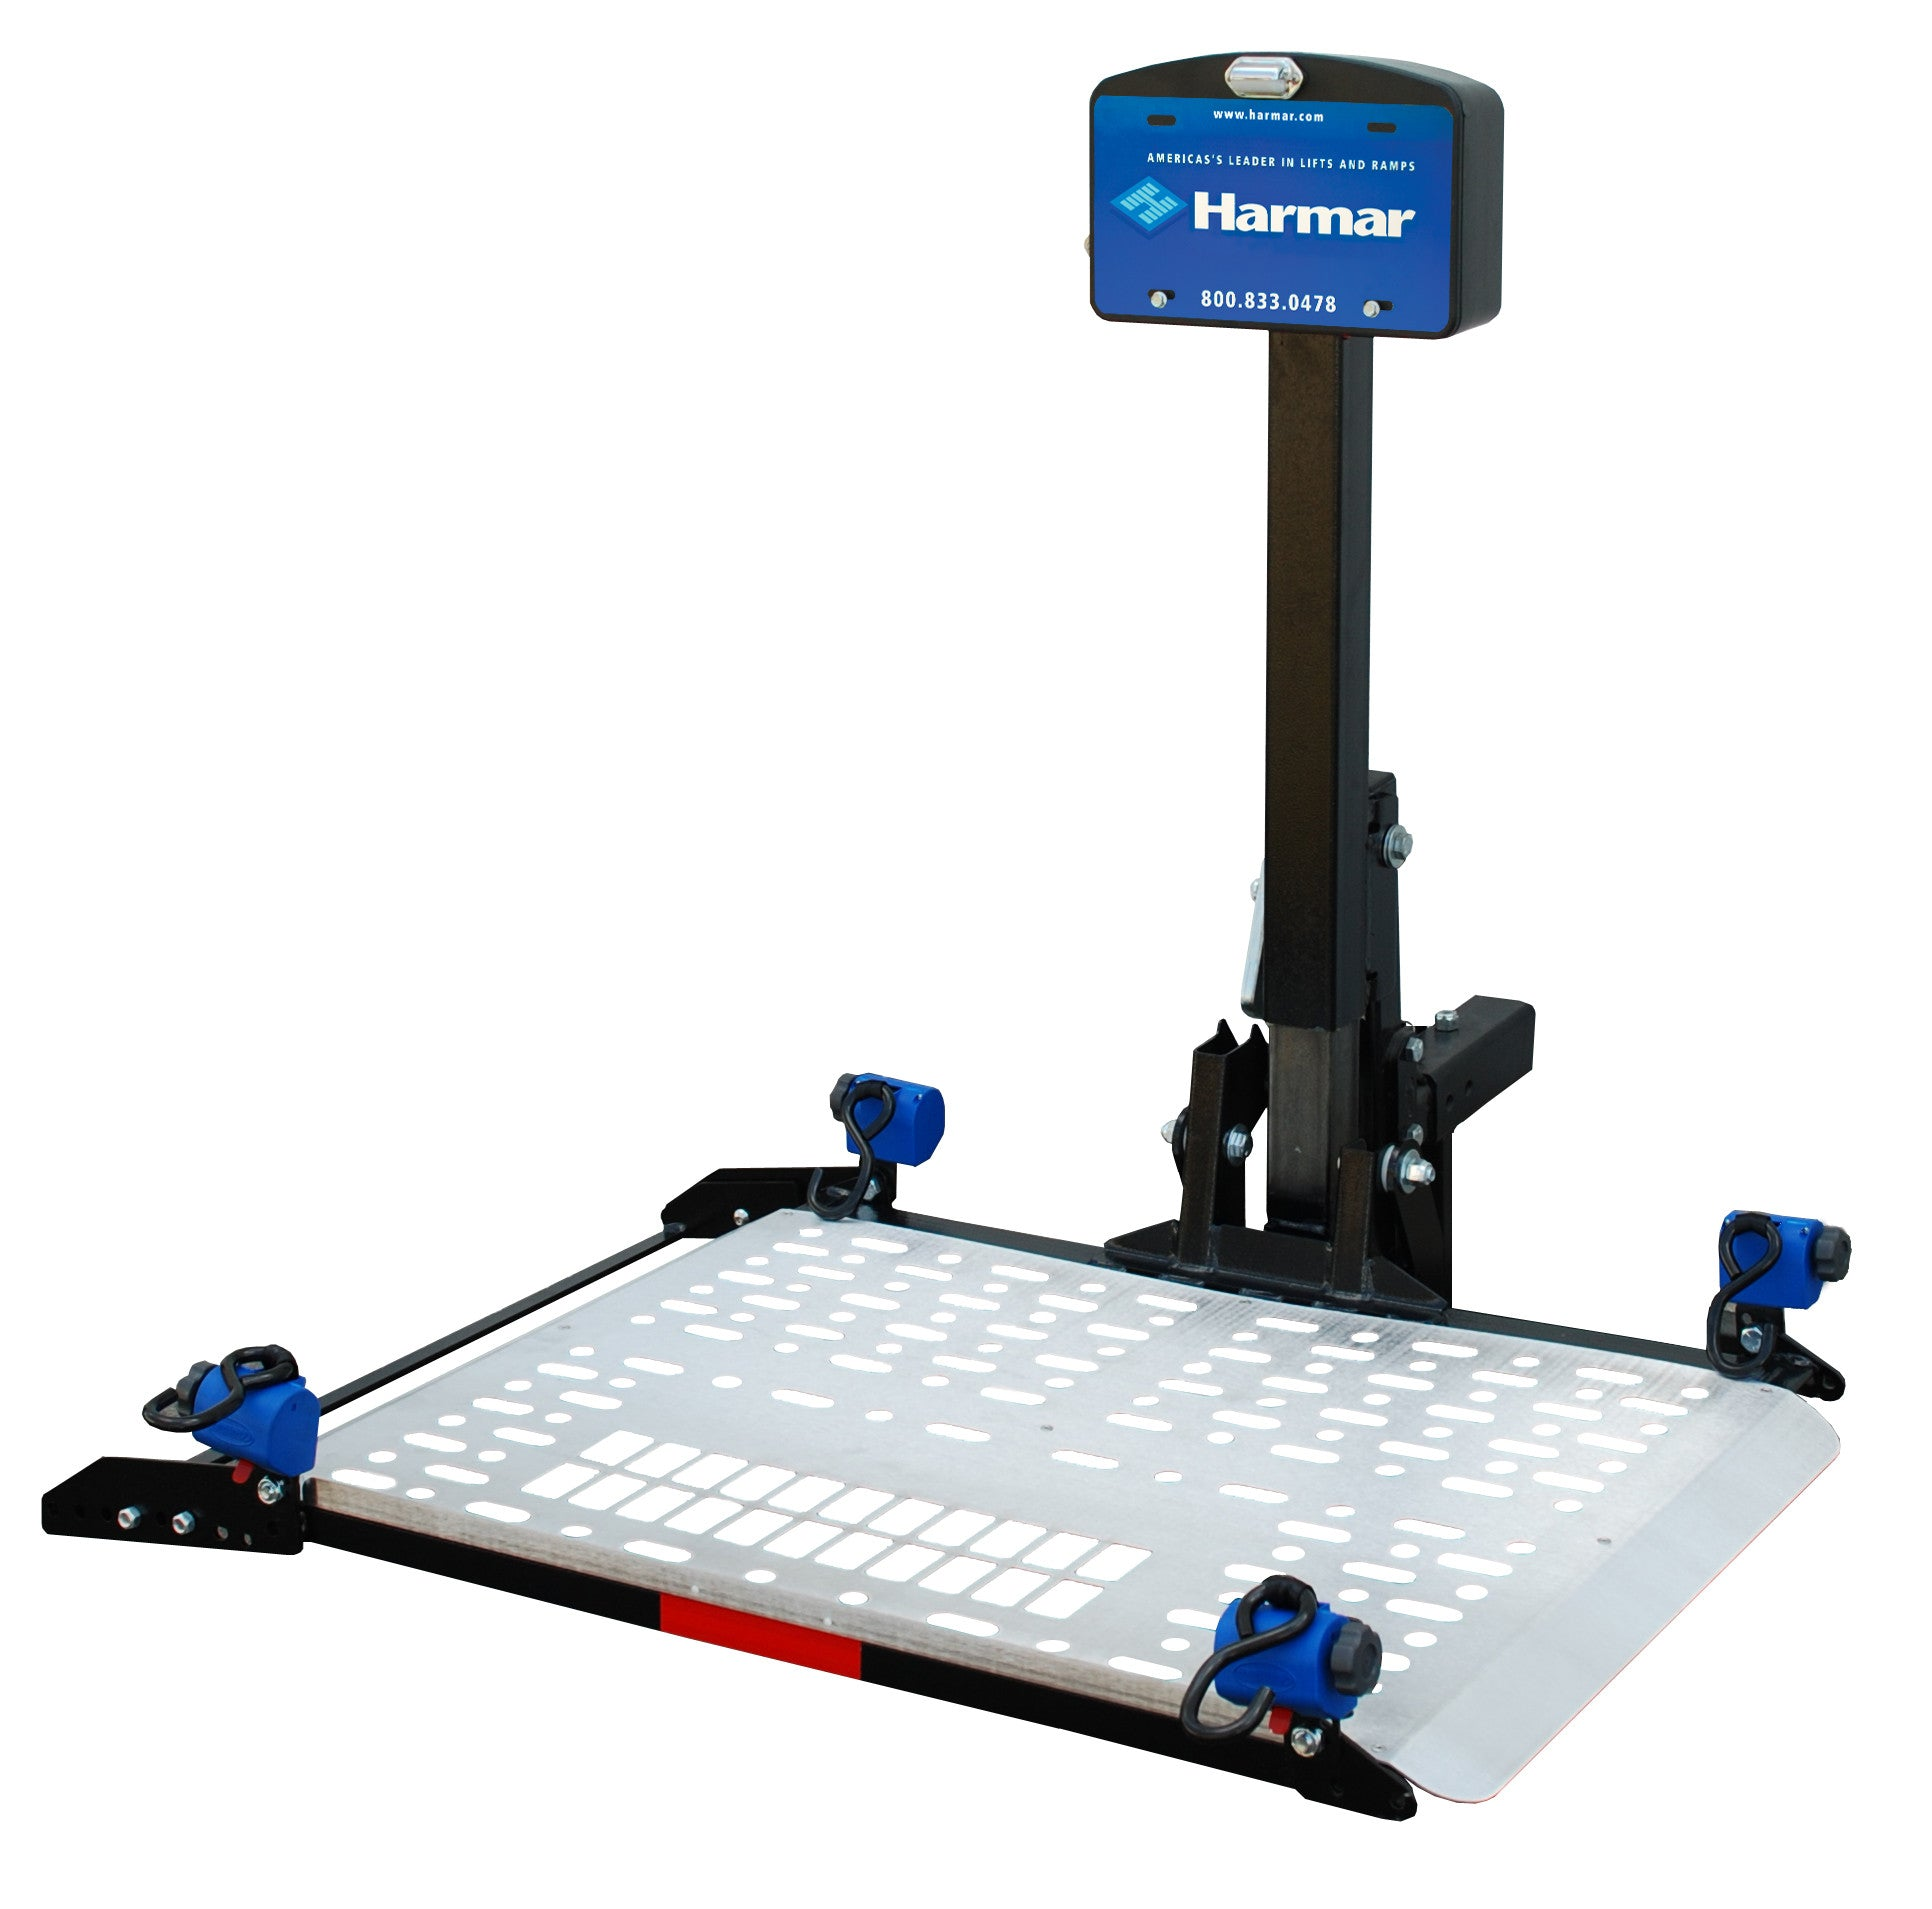 Harmar Fusion Lift AL300 Vehicle Lift